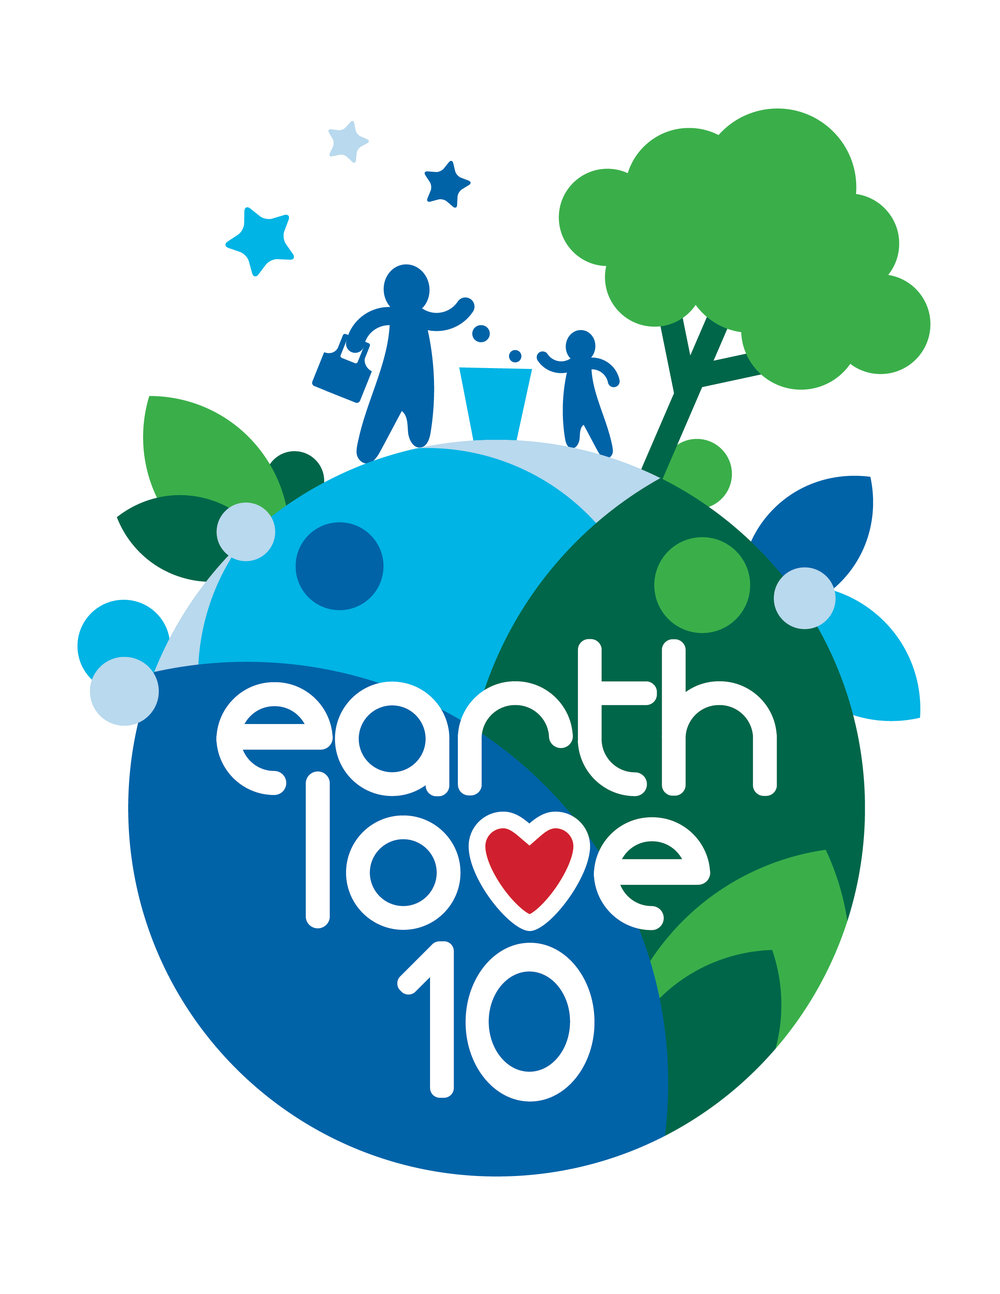 Earth Love 10 full logo_Full Logo.jpg